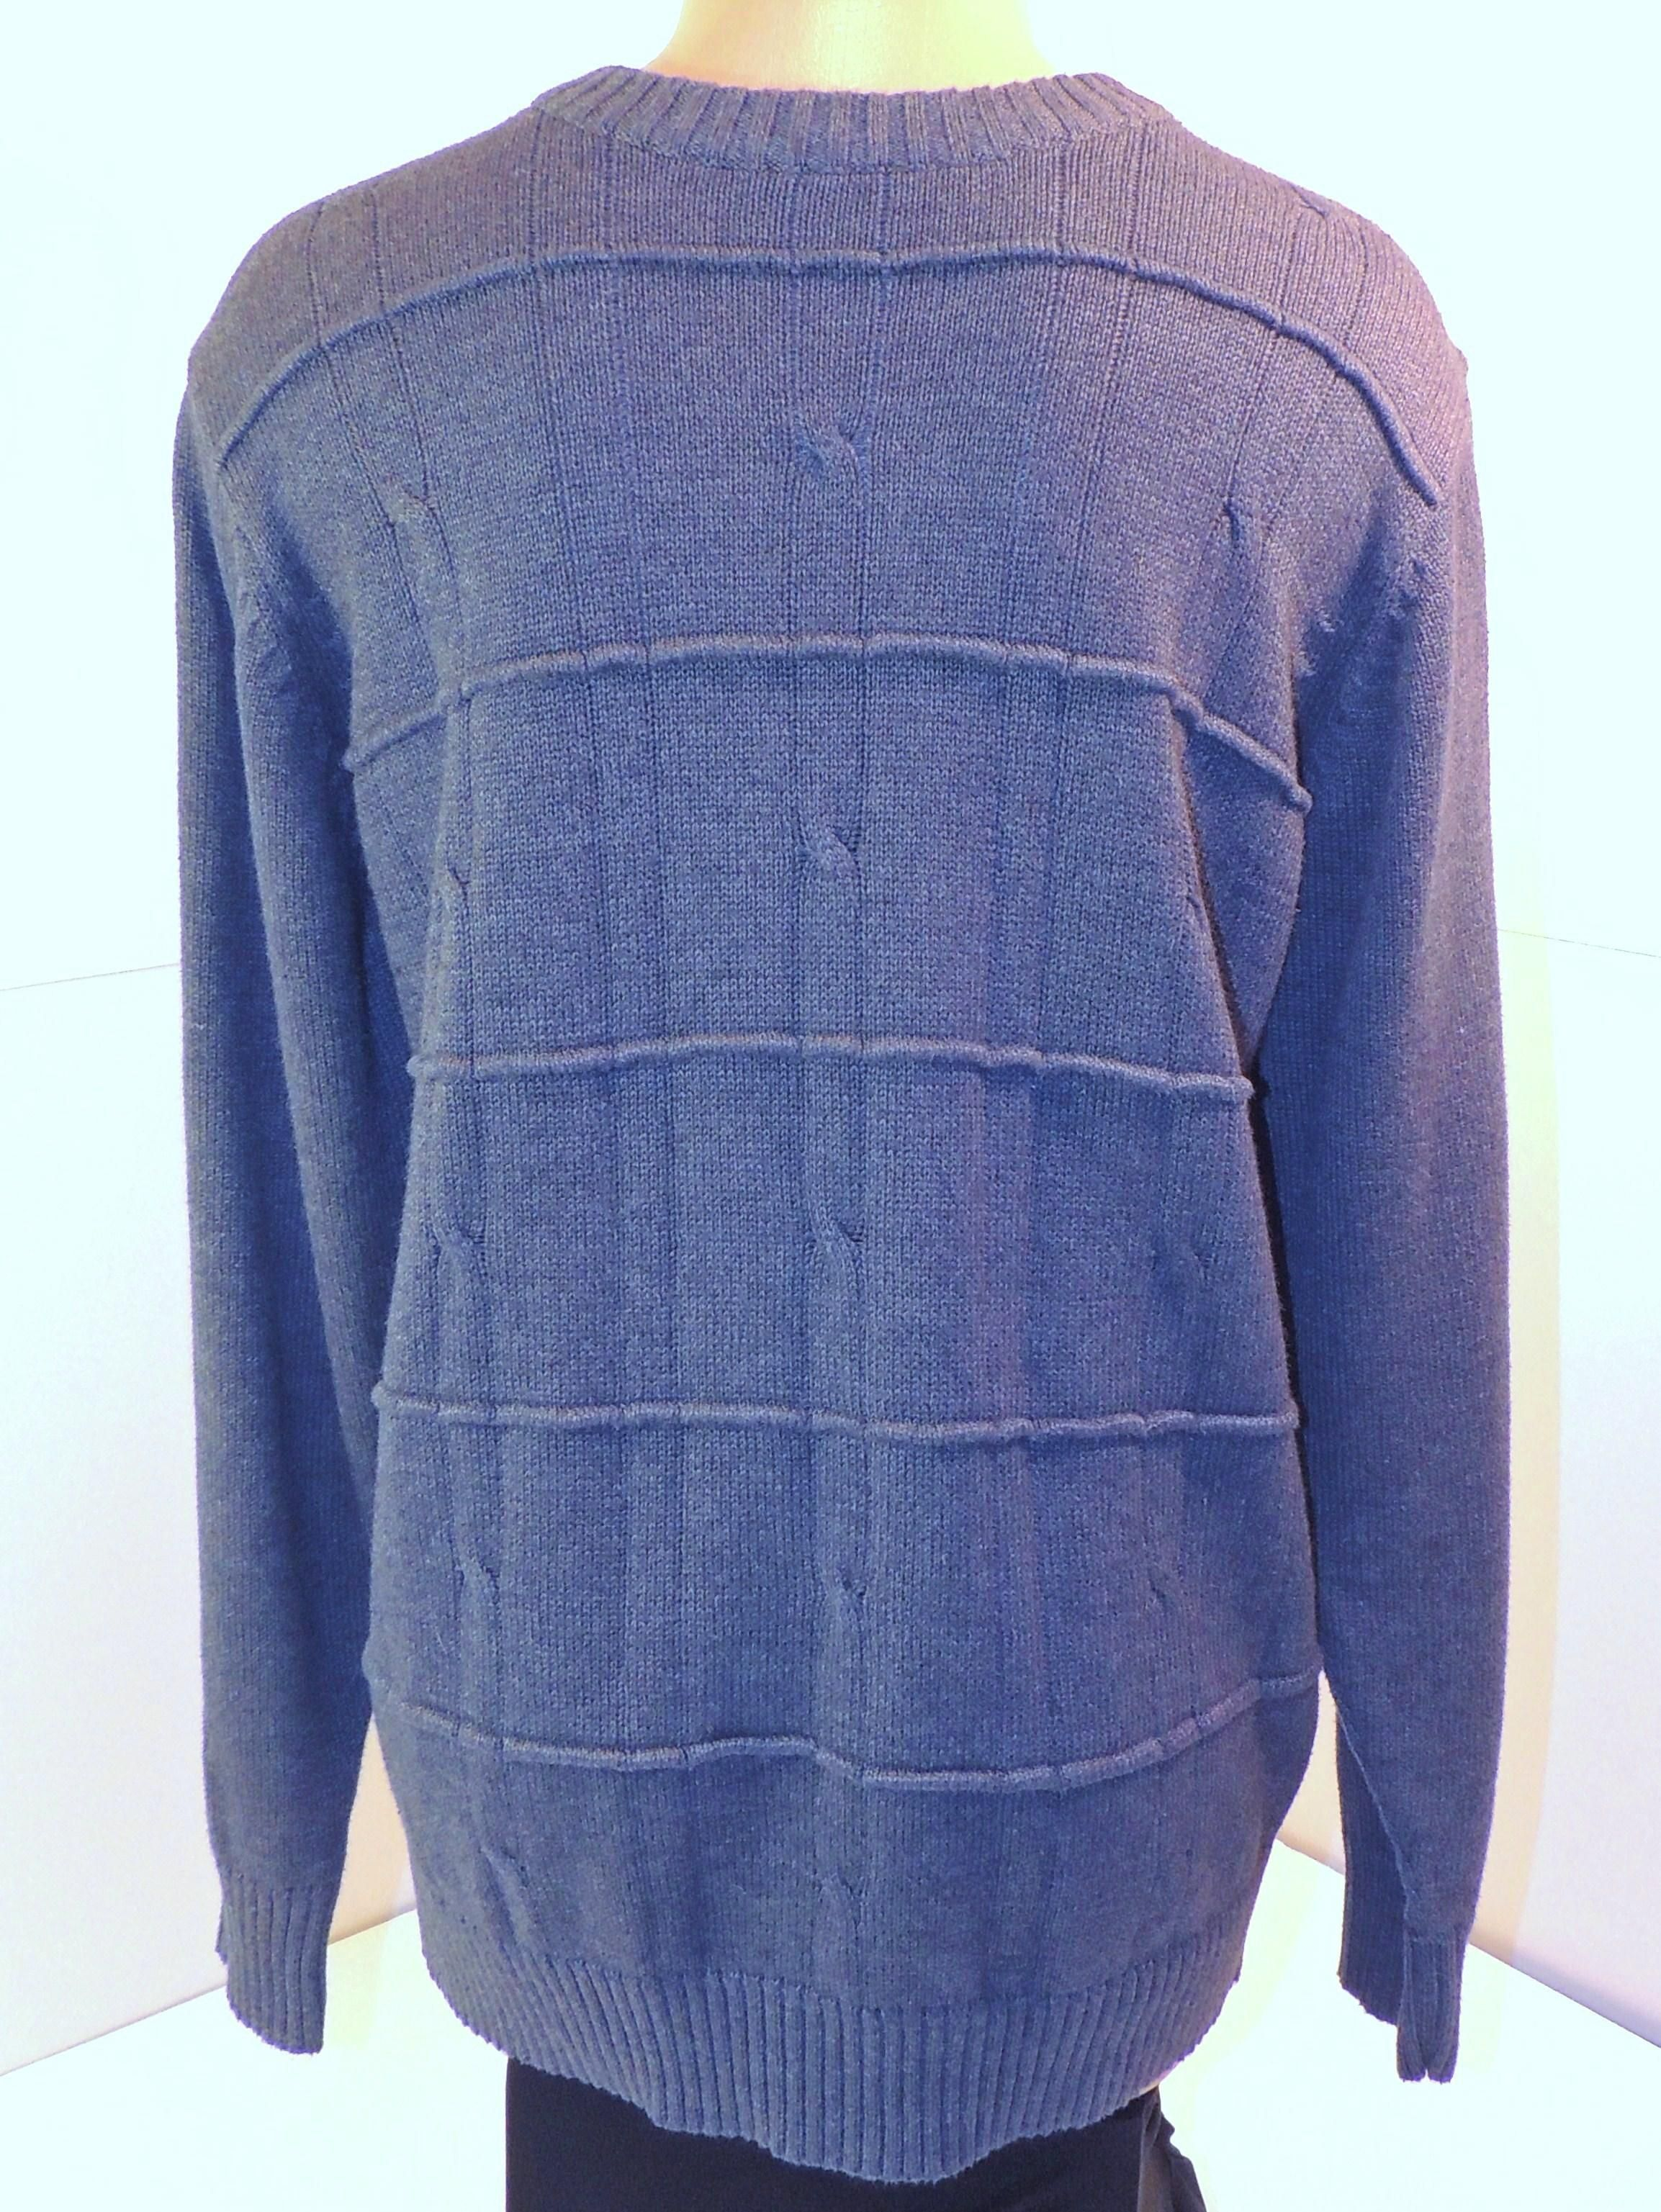 Men's Oscar de la Renta Heather Blue Sweater Sz M ...